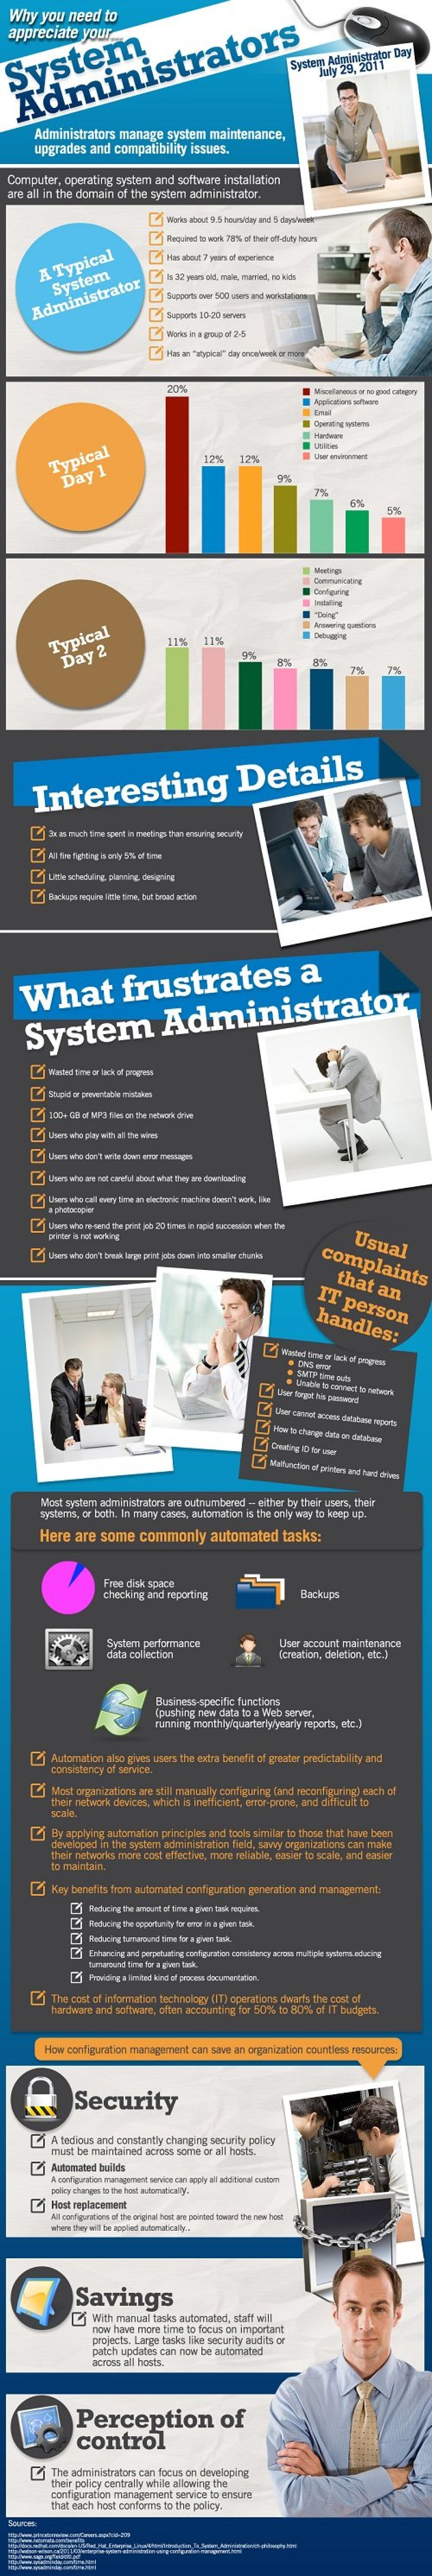 System Admin Day 2011: Has it been a year already? Infographic